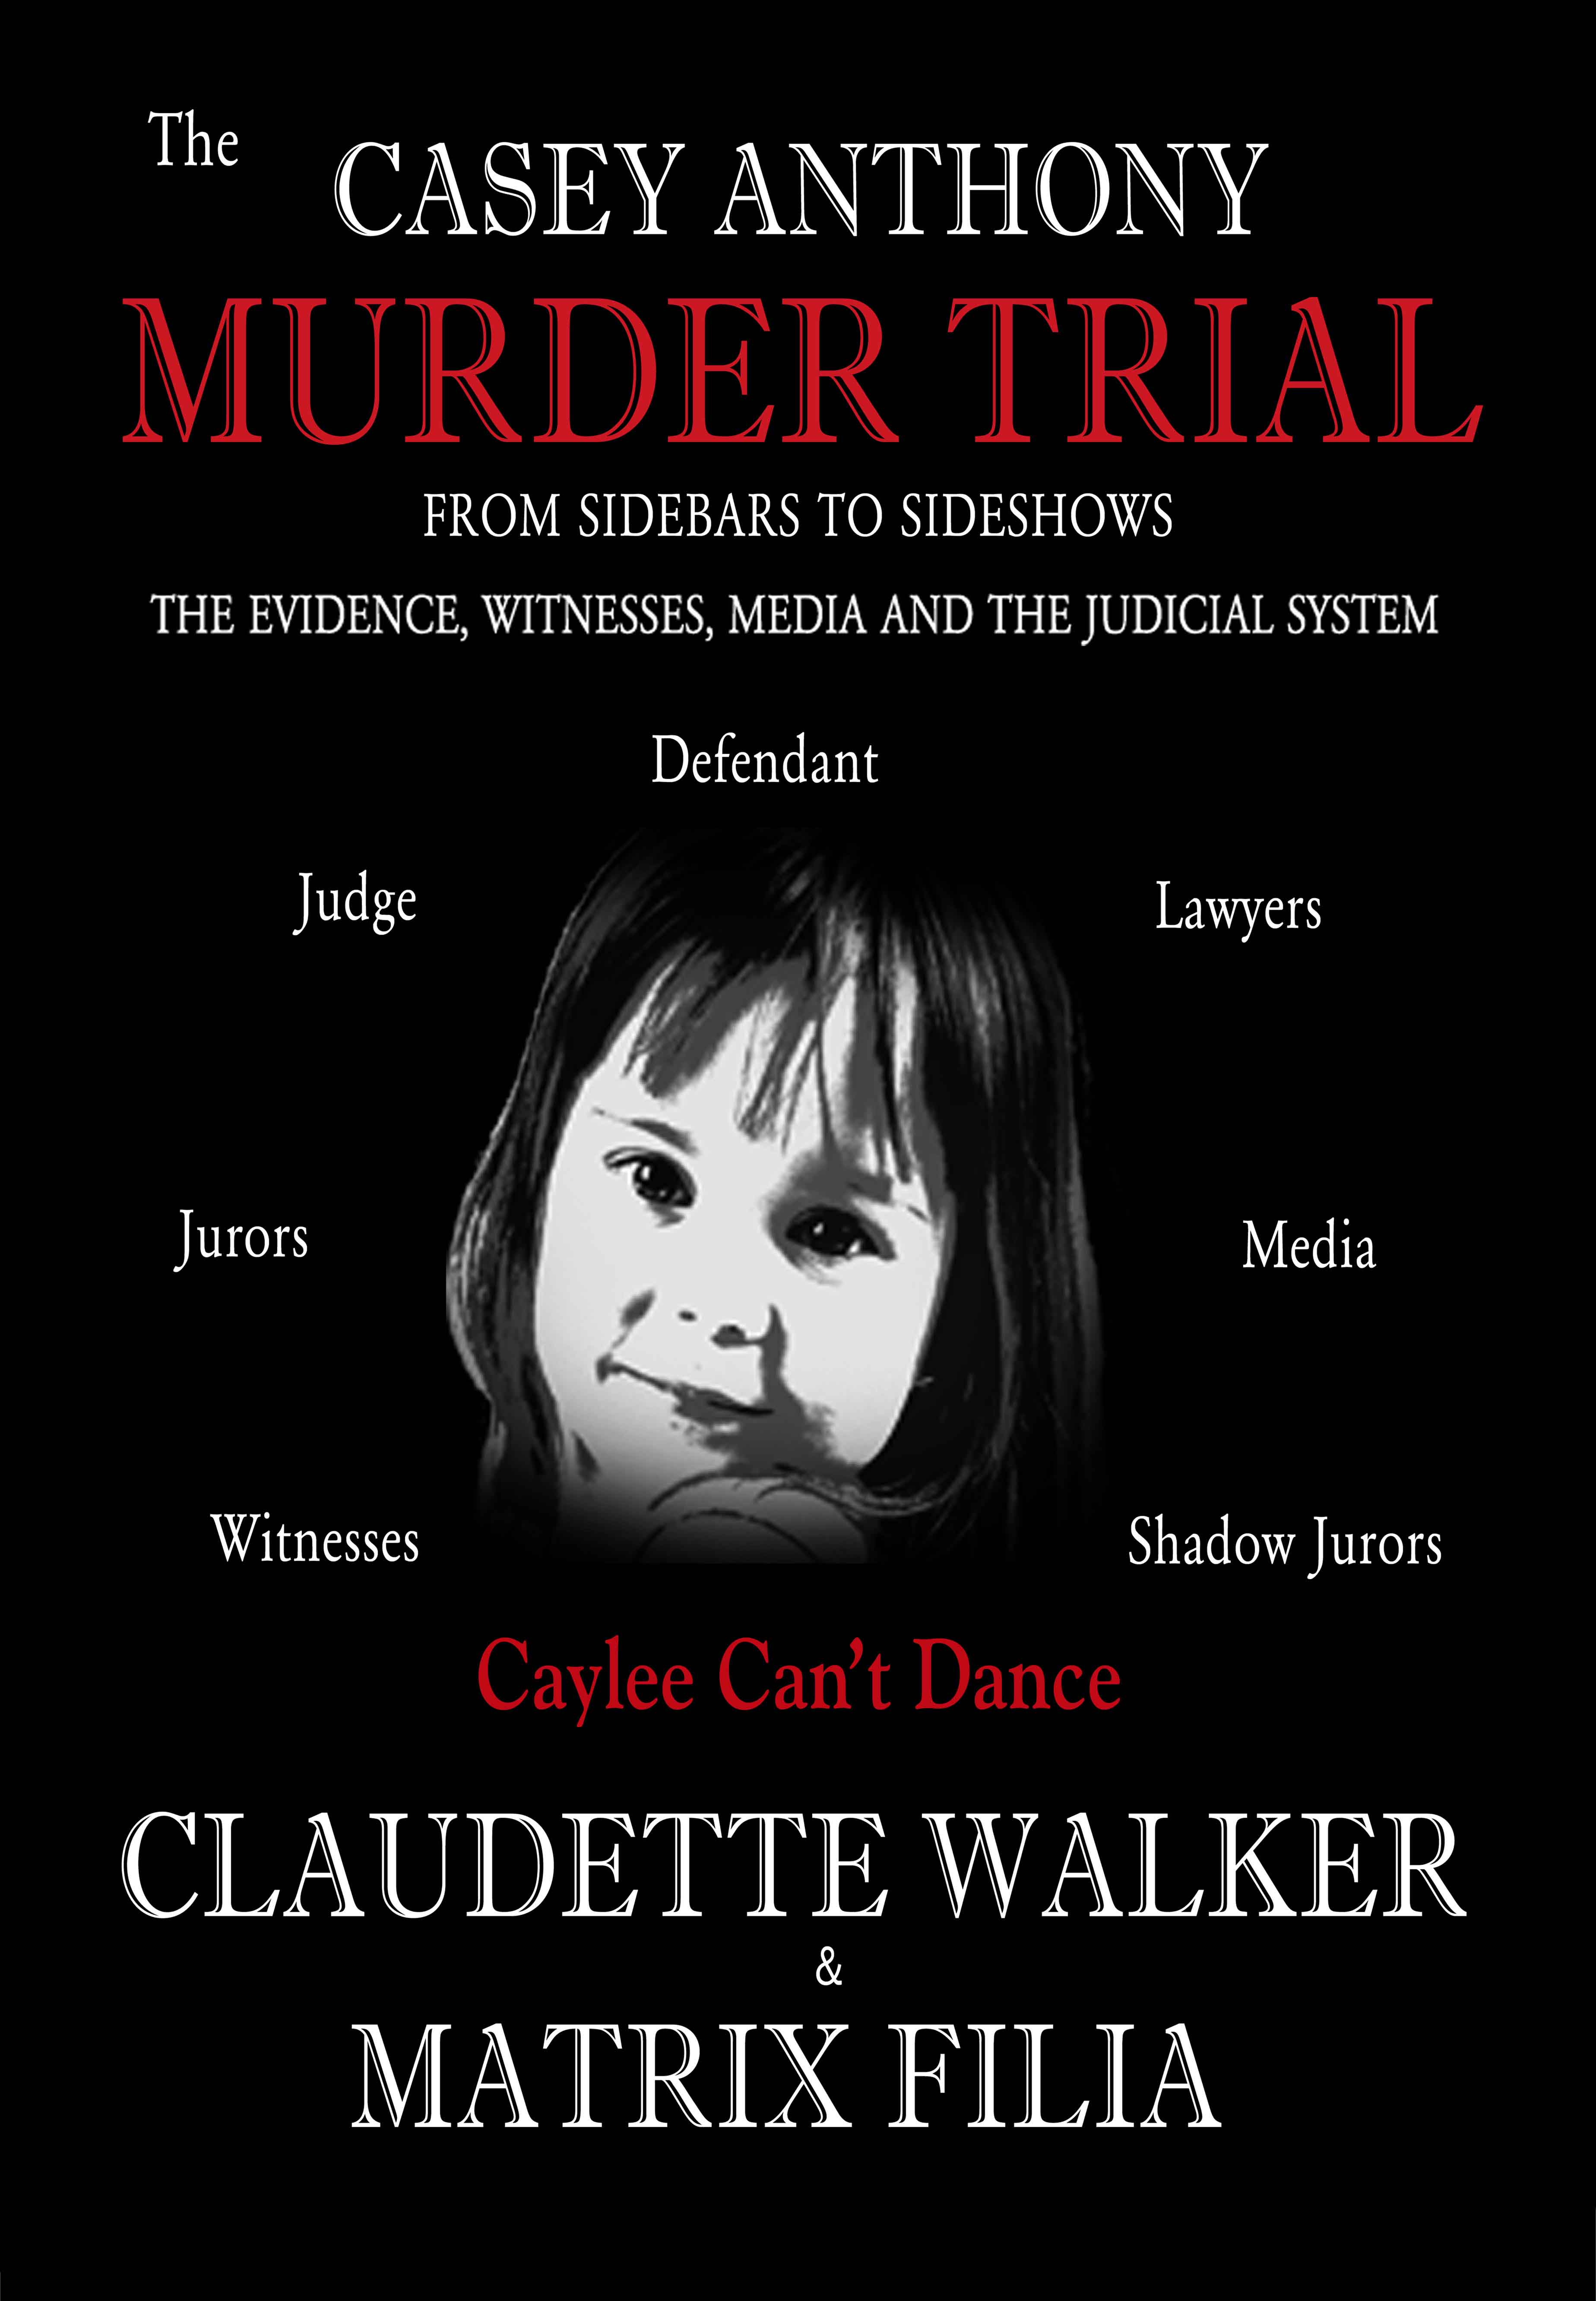 casey anthony murder trial book cover